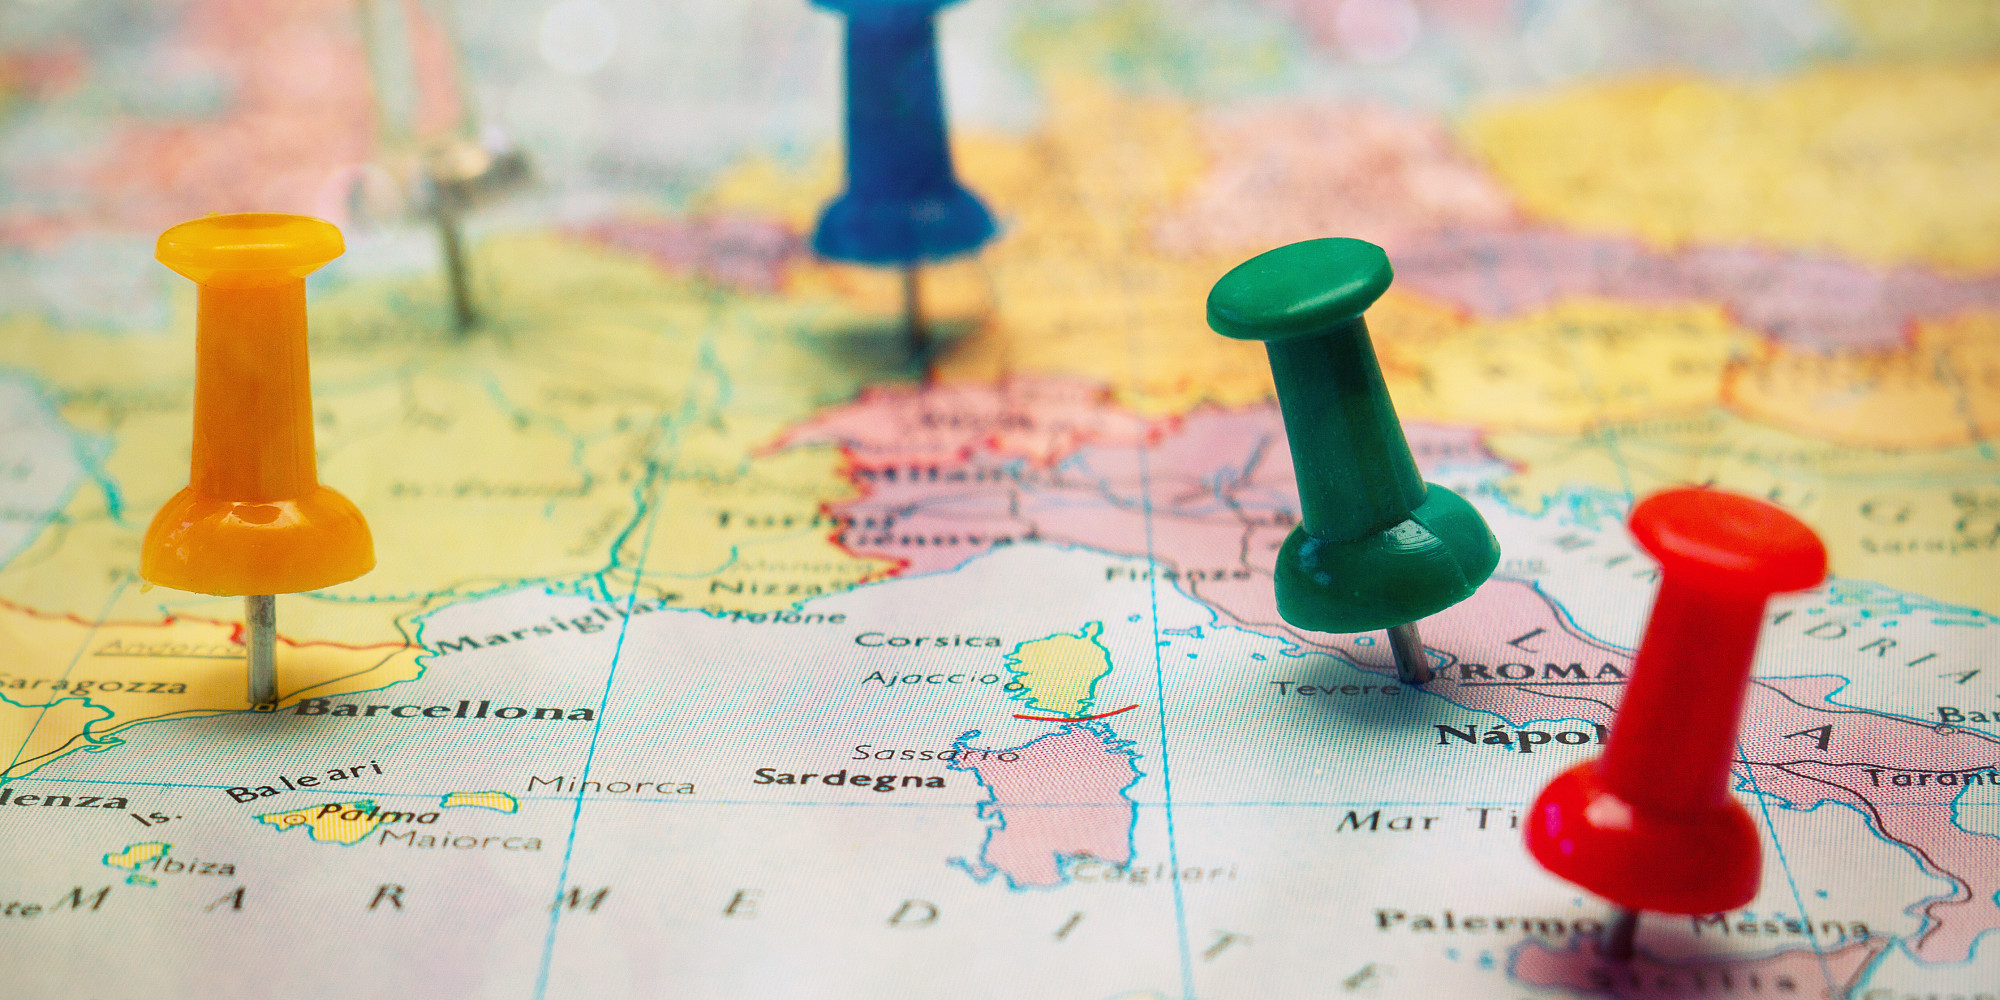 Best Travel Maps - What to Look For When Going On a Holiday